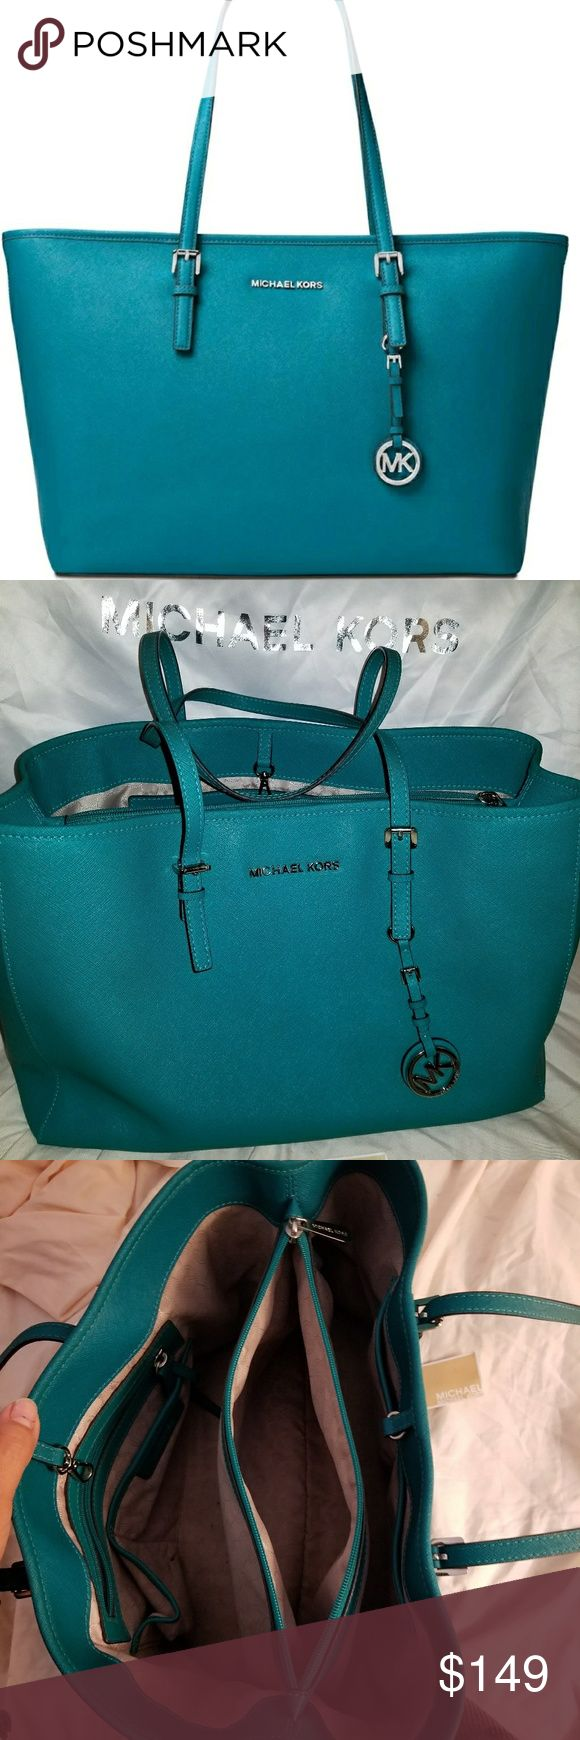 """💙💚 MICHAEL KORS JET SET MEDIUM TOTE 💚💙 Chic, functional and a bright pop of color. The Jet Set medium tote from MICHAEL Michael Kors featuring plenty of pockets to keep you organized.  Leather, Medium sized bag; 14"""" W x 10"""" H. silver-tone exterior hardware and logo medallion.  1 Dust bag is included MSRP $298 color is peacock. Michael Kors Bags Totes"""